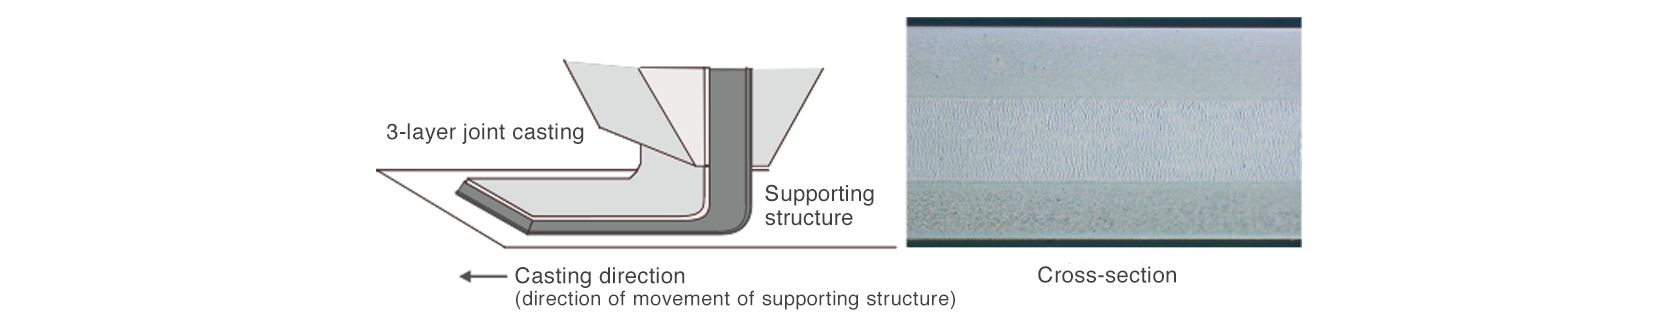 [image] Joint casting technology produces uniform multi-layered structures and enables improvements of surface condition and high functionality